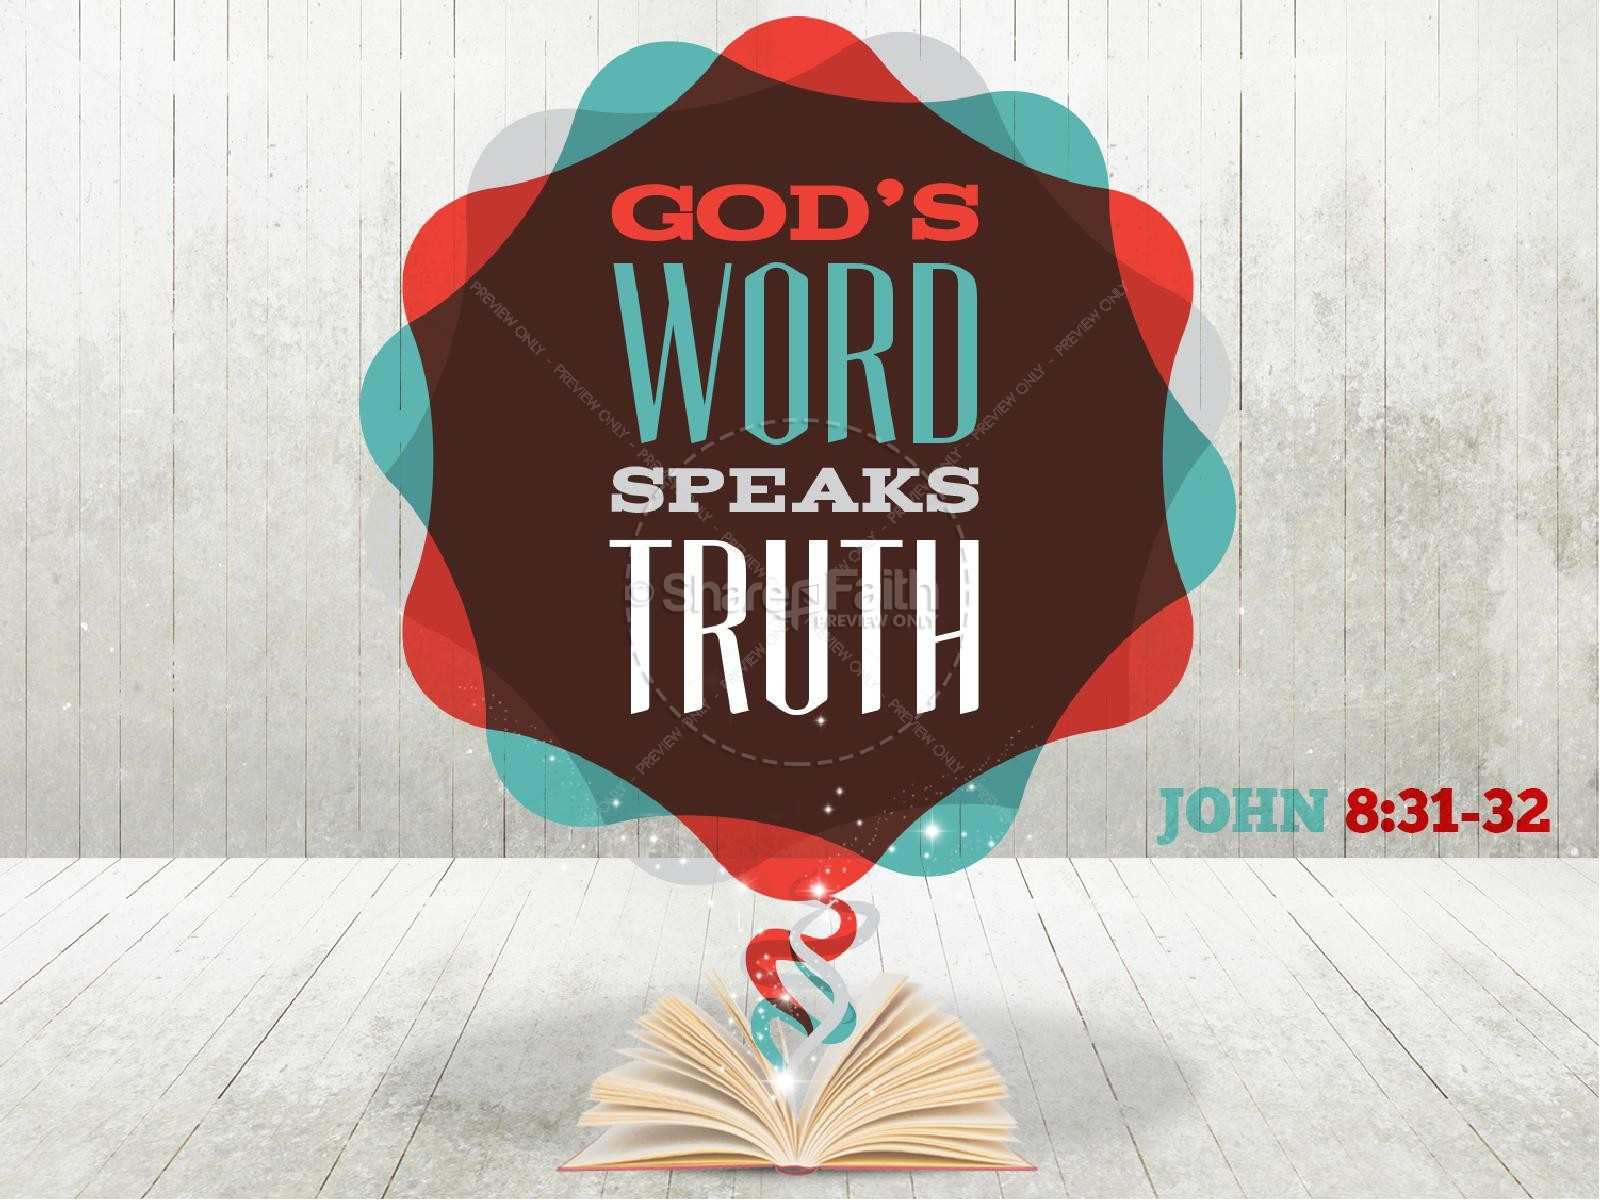 Gods Word Speaks Truth Bible Sermon PowerPoint Template | PowerPoint ...